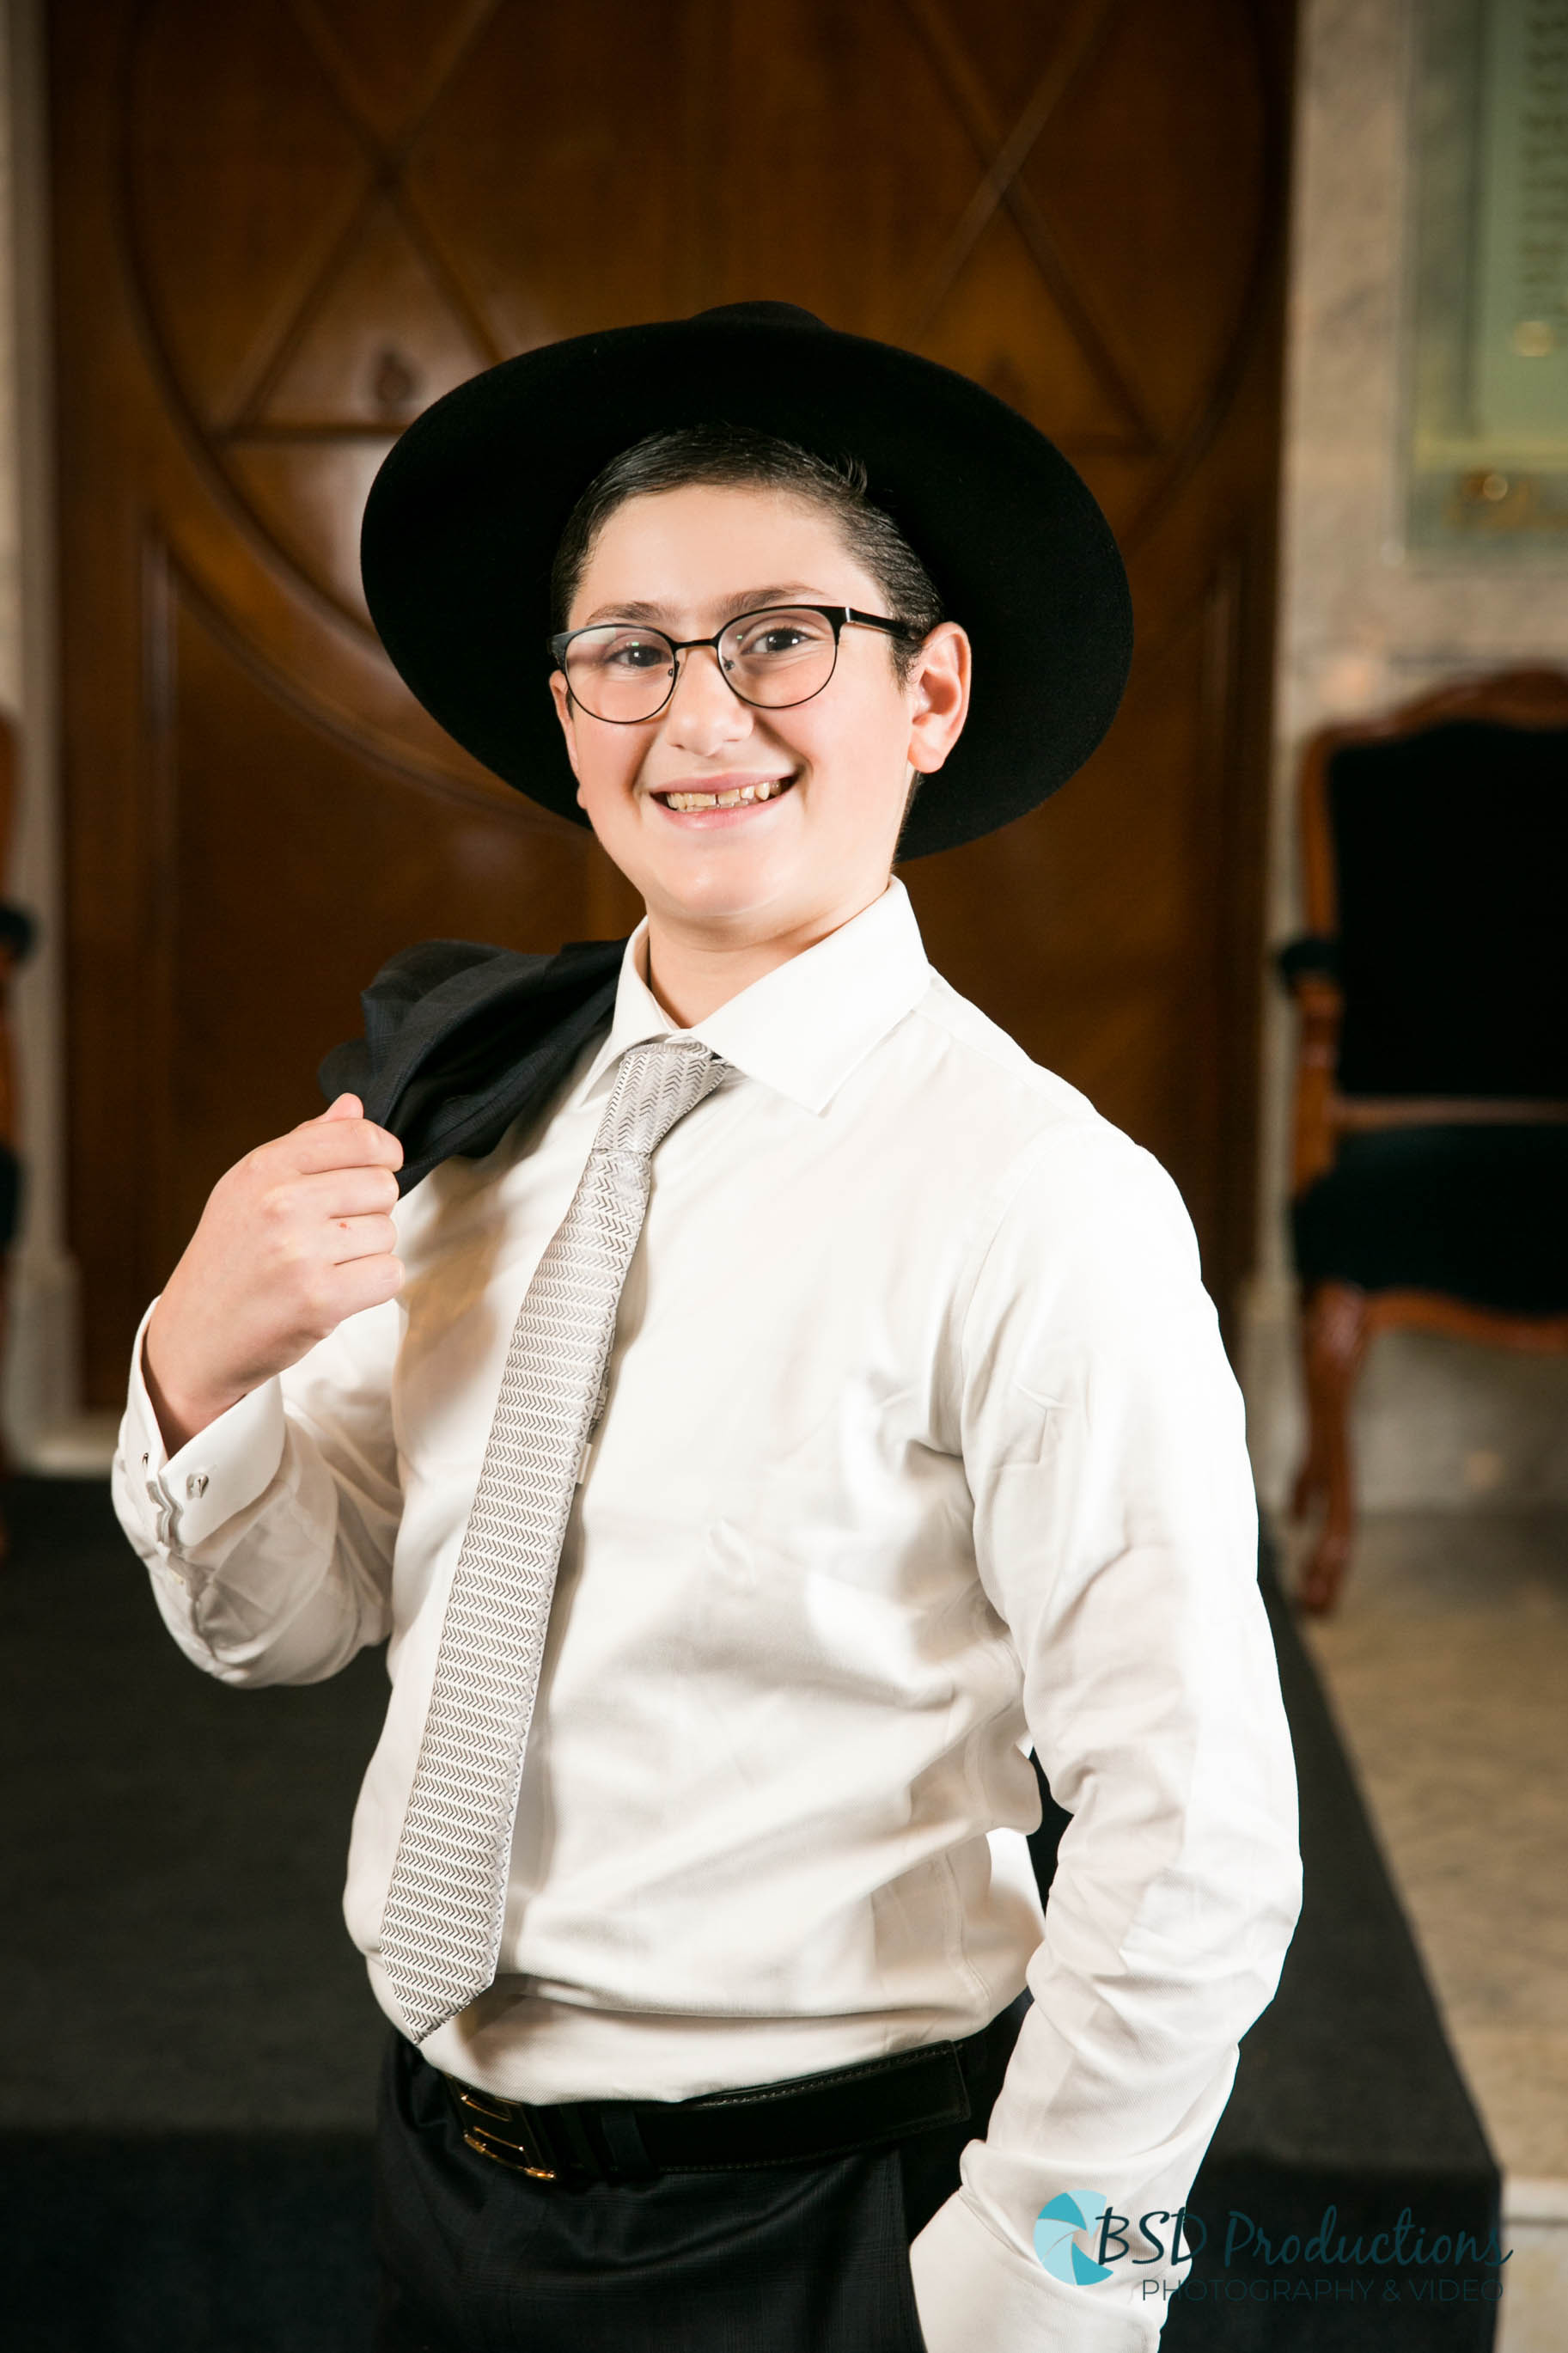 D_R_1144 Bar Mitzvah – BSD Productions Photography